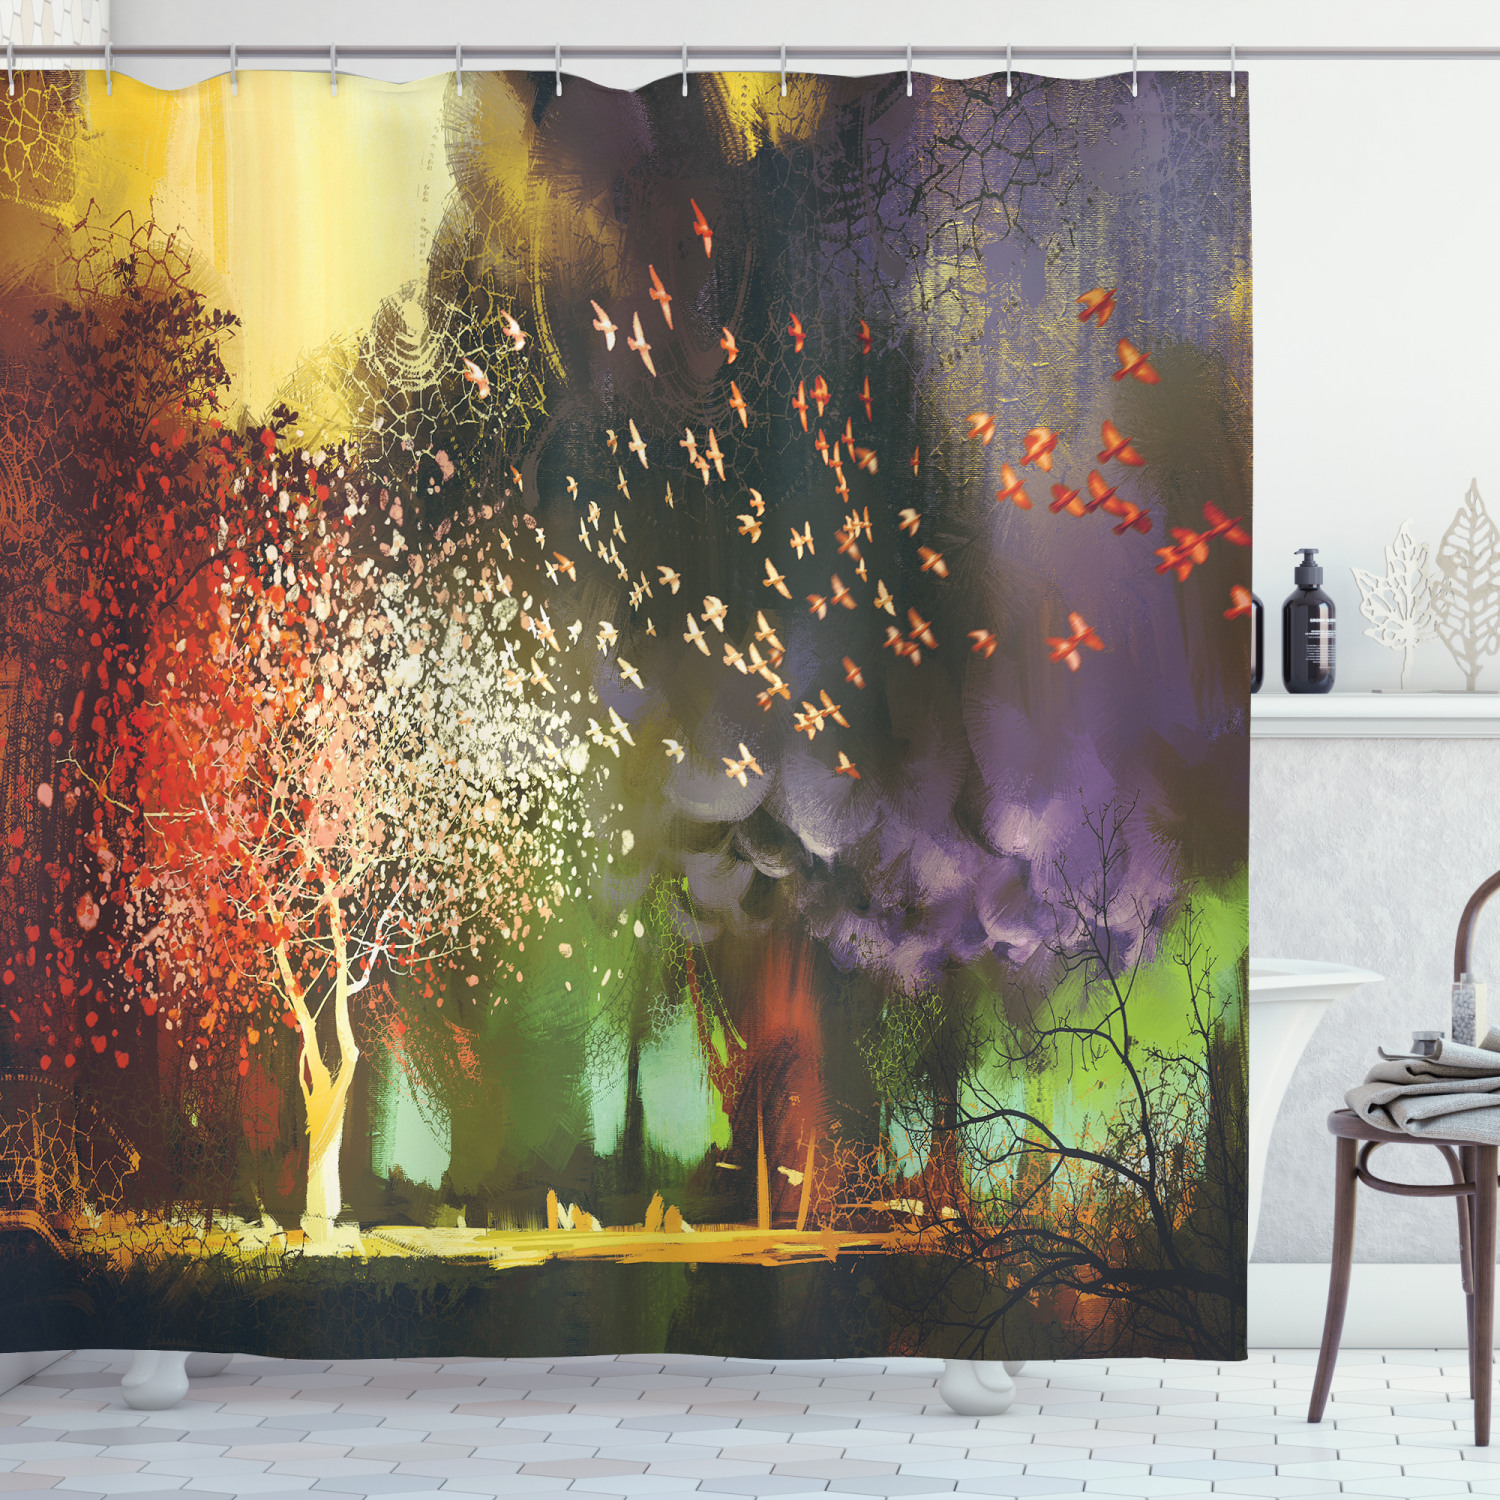 fantasy house decor shower curtain set fairy forest with mysterious trees and birds supernatural vivid wonder world bathroom accessories 69w x 70l